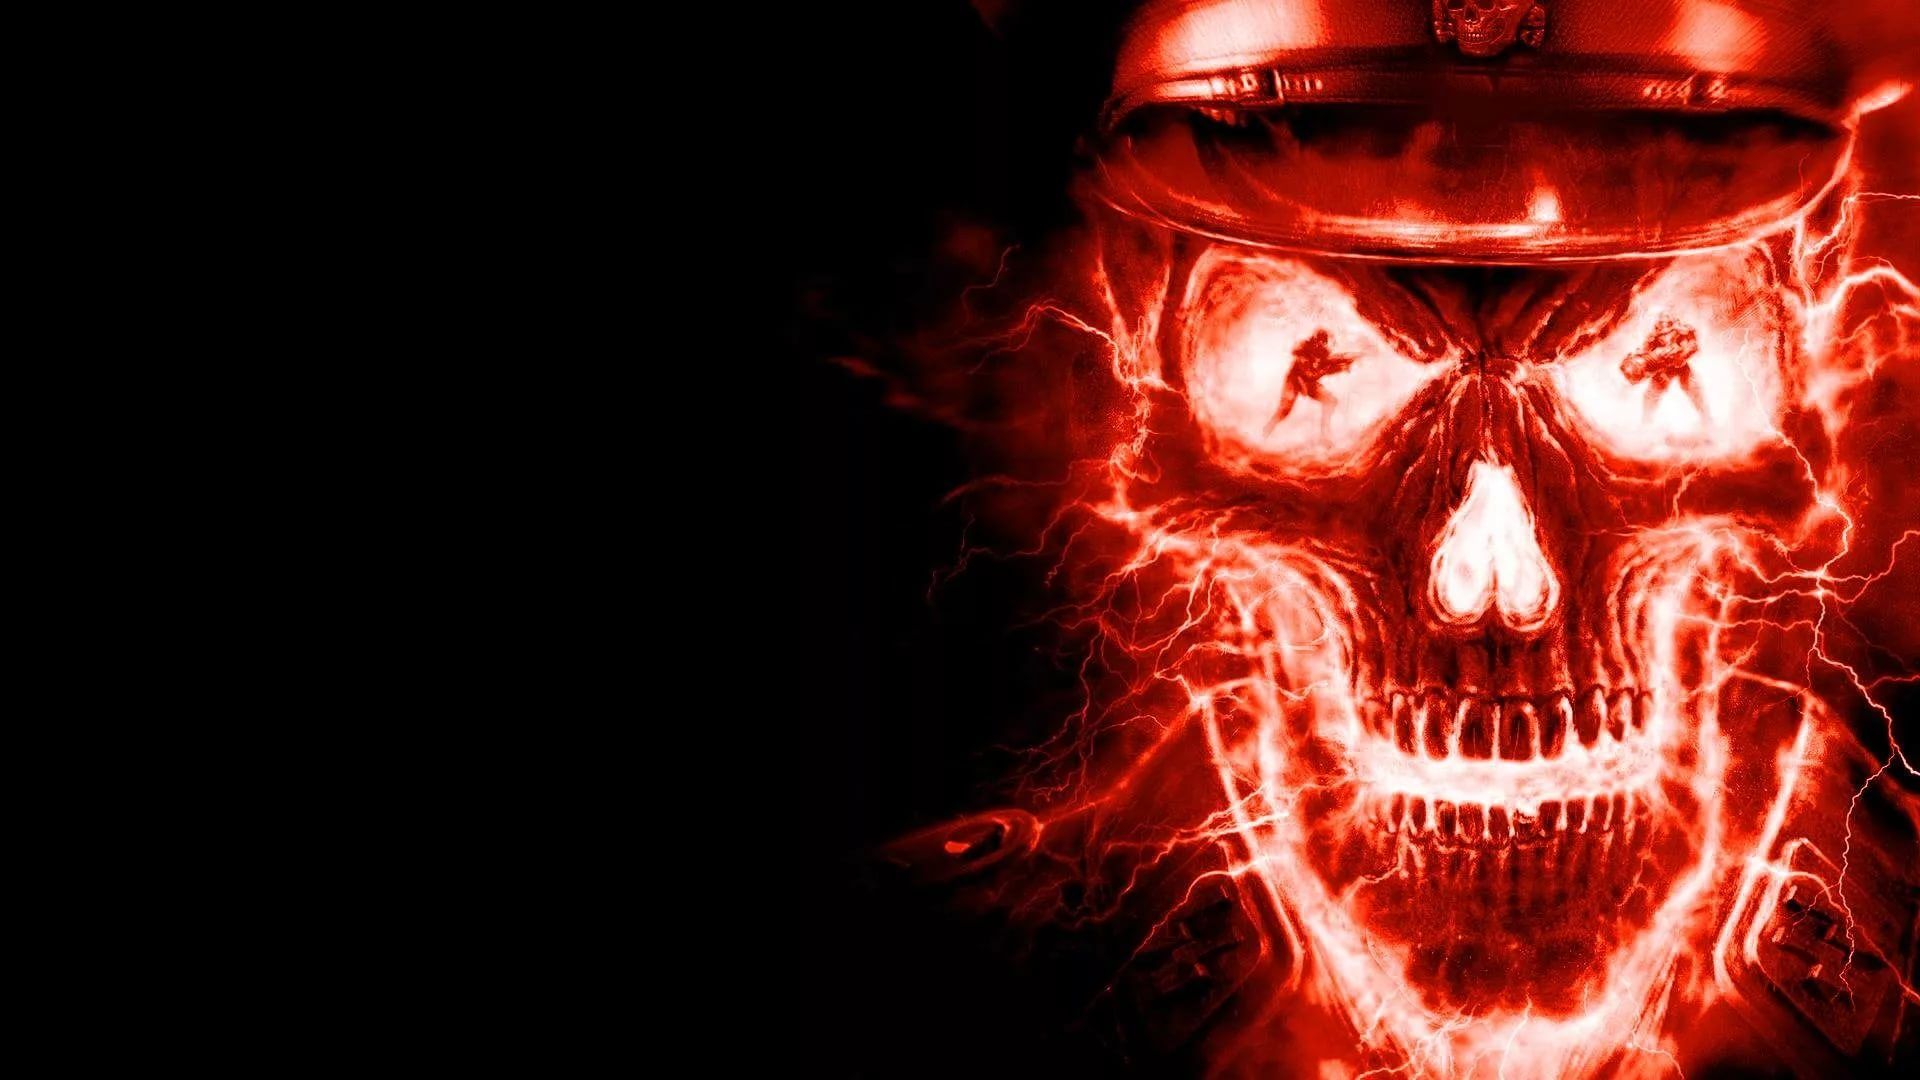 Flaming Skull Wallpaper and Background